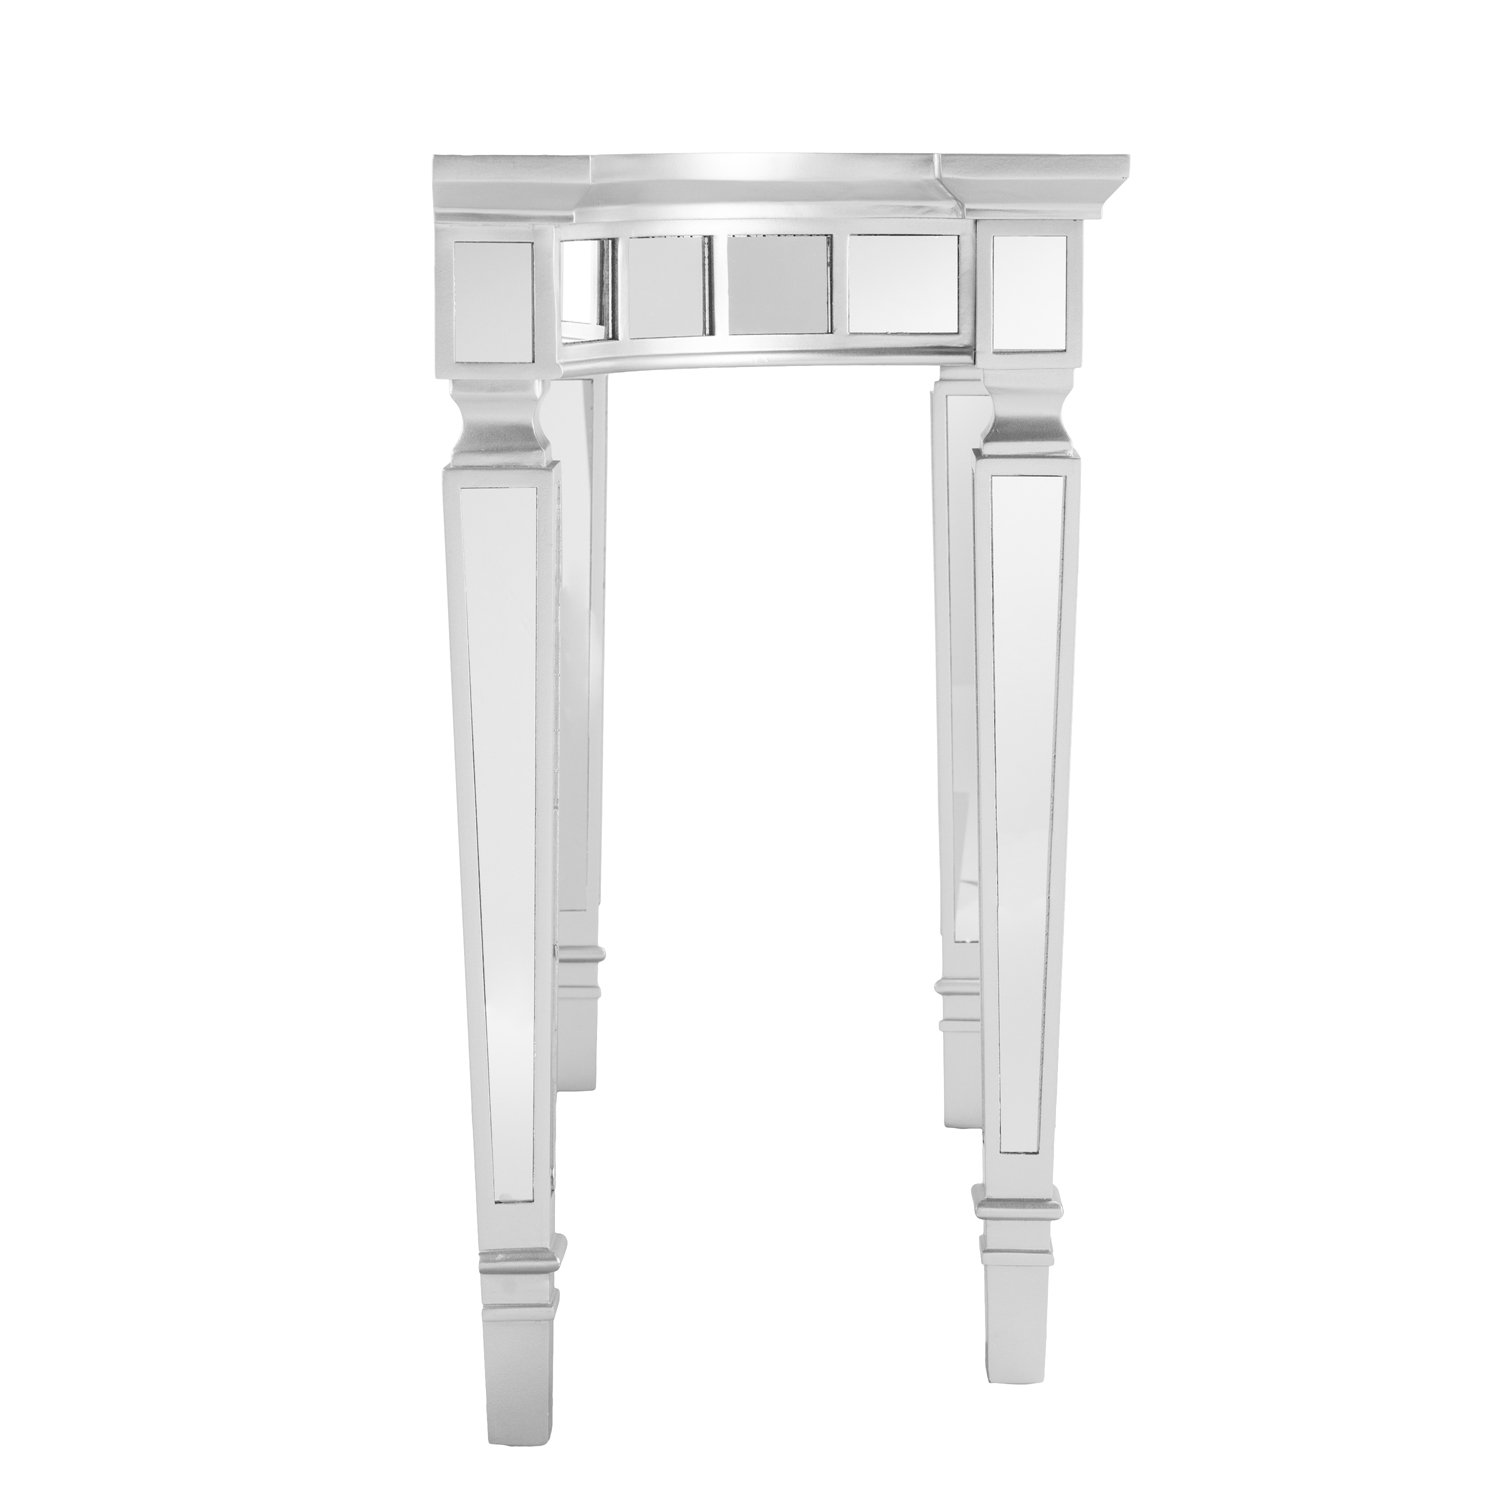 Southern Enterprises Glenview Mirror Console Table – Mirrored Surface w Silver Matte Trim – Glam Style